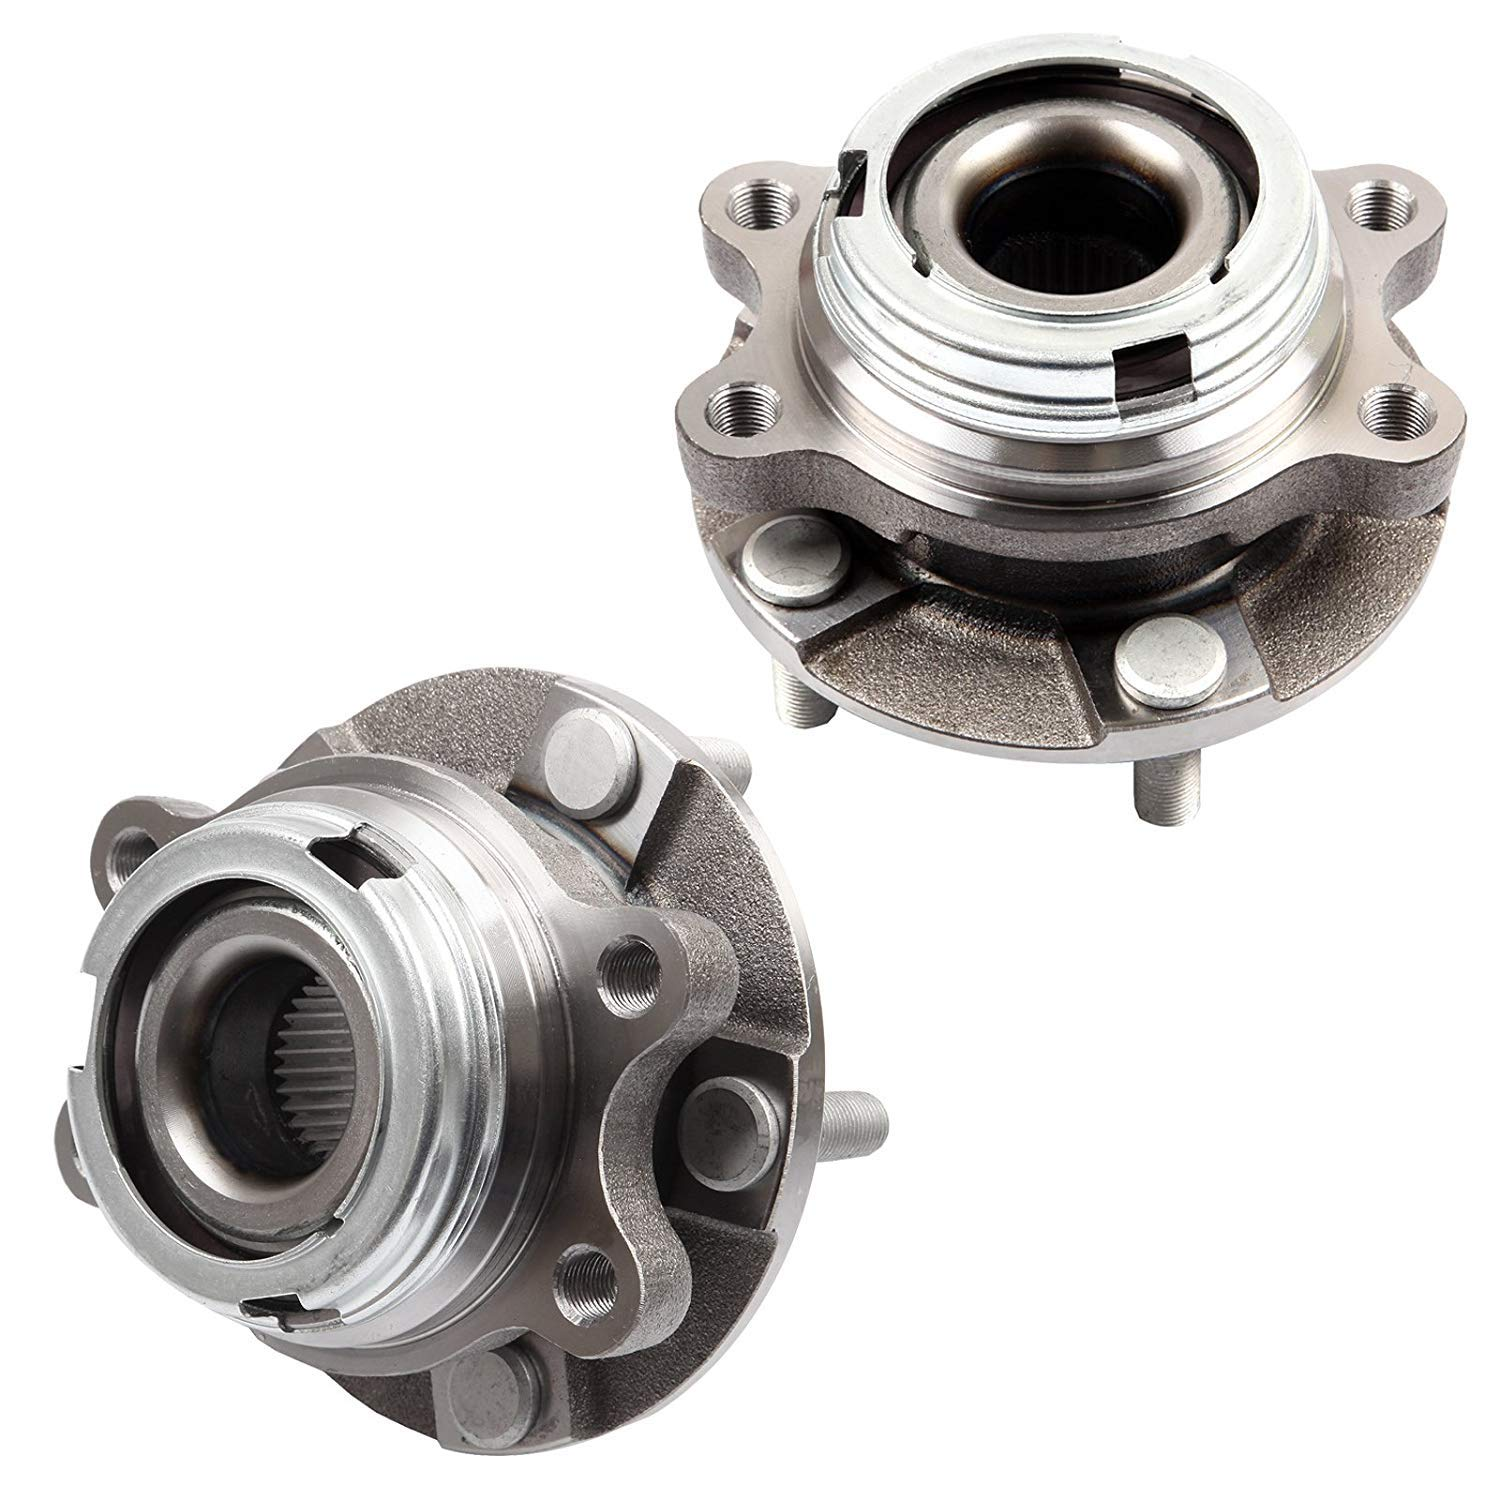 Bodeman - Pair (2) Front Wheel Hub and Bearing Assembly for 2007-2013 Nissan Altima 3.5L / 2014-2017 Altima / 2009-2017 Maxima / 2009-2018 Murano / 2013-2017 Pathfinder by Bodeman